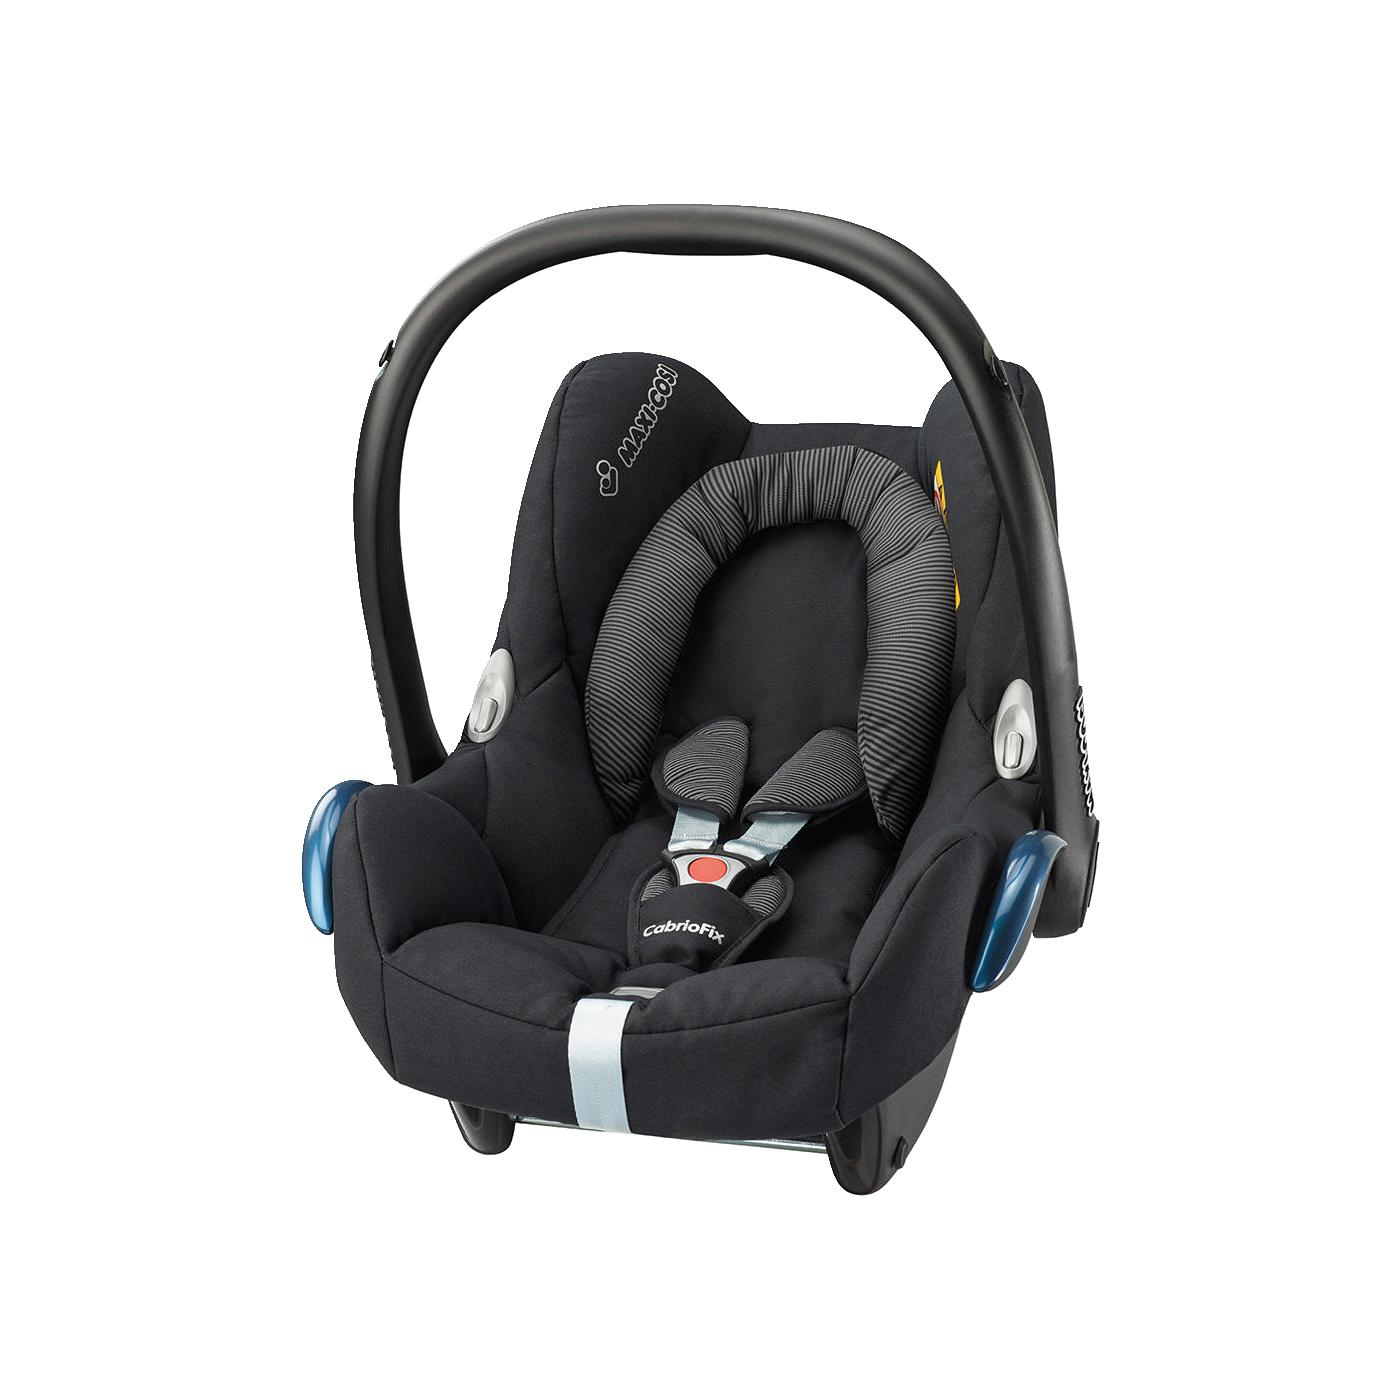 maxi cosi babyschale cabriofix black raven online g nstig kaufen. Black Bedroom Furniture Sets. Home Design Ideas